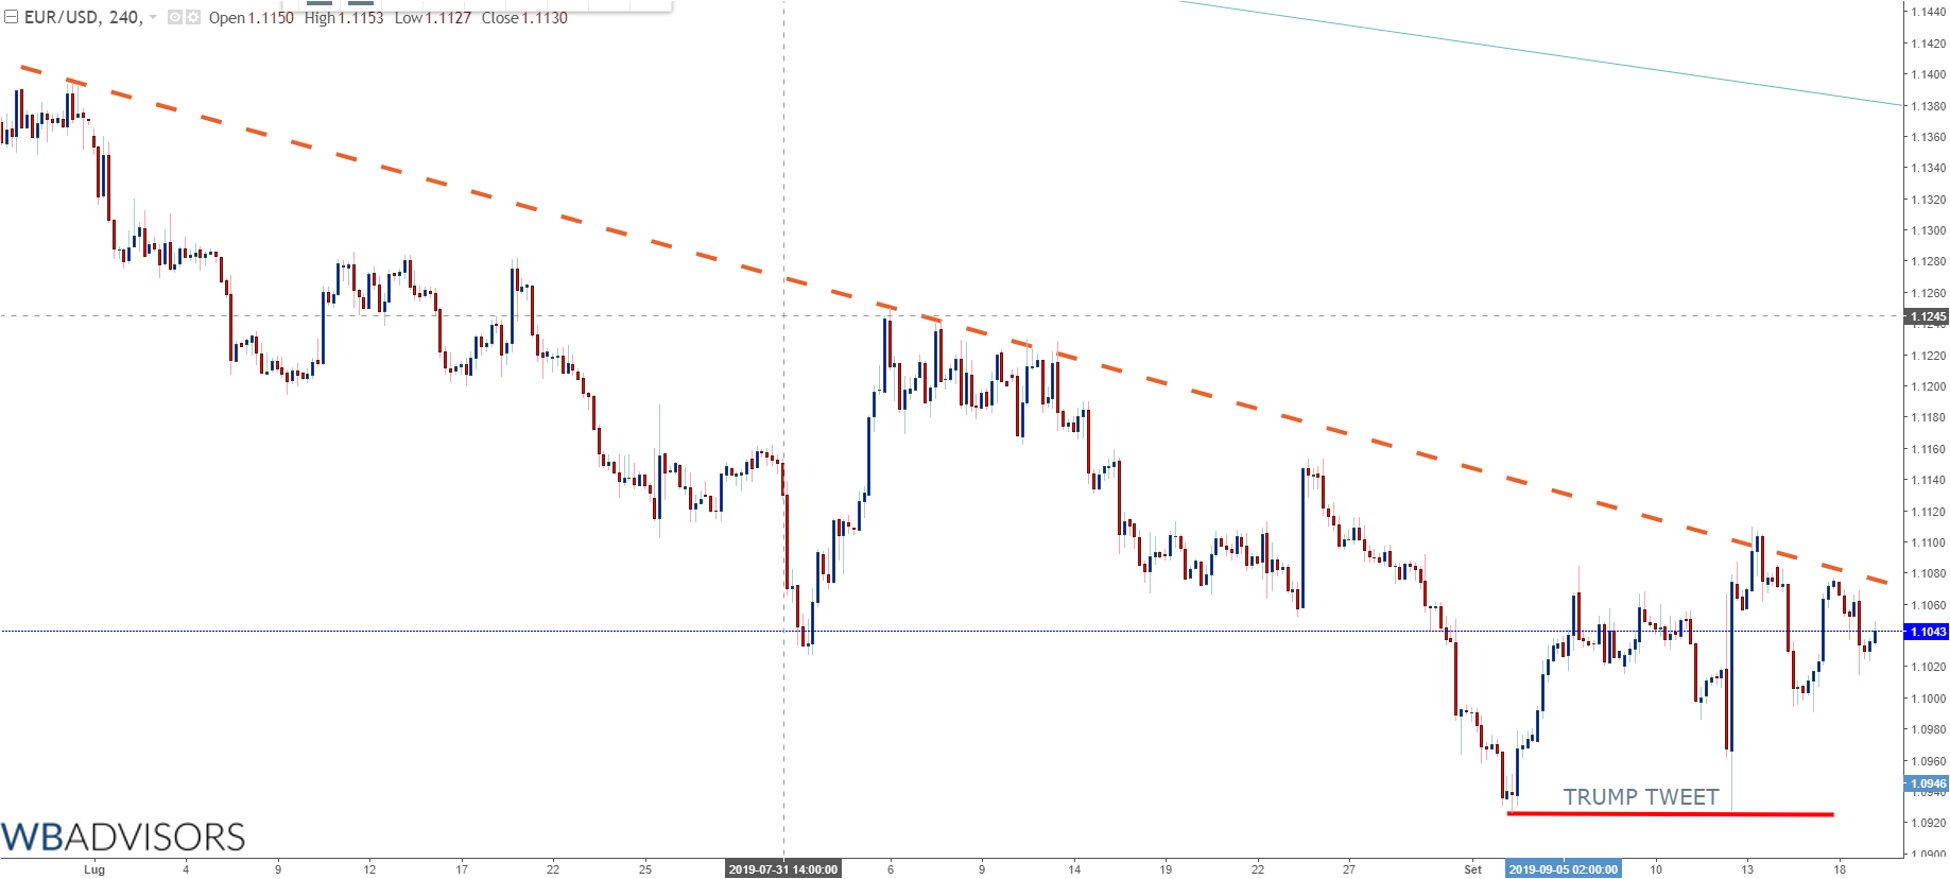 WB ANALYTICS: EUR USD FED RATE